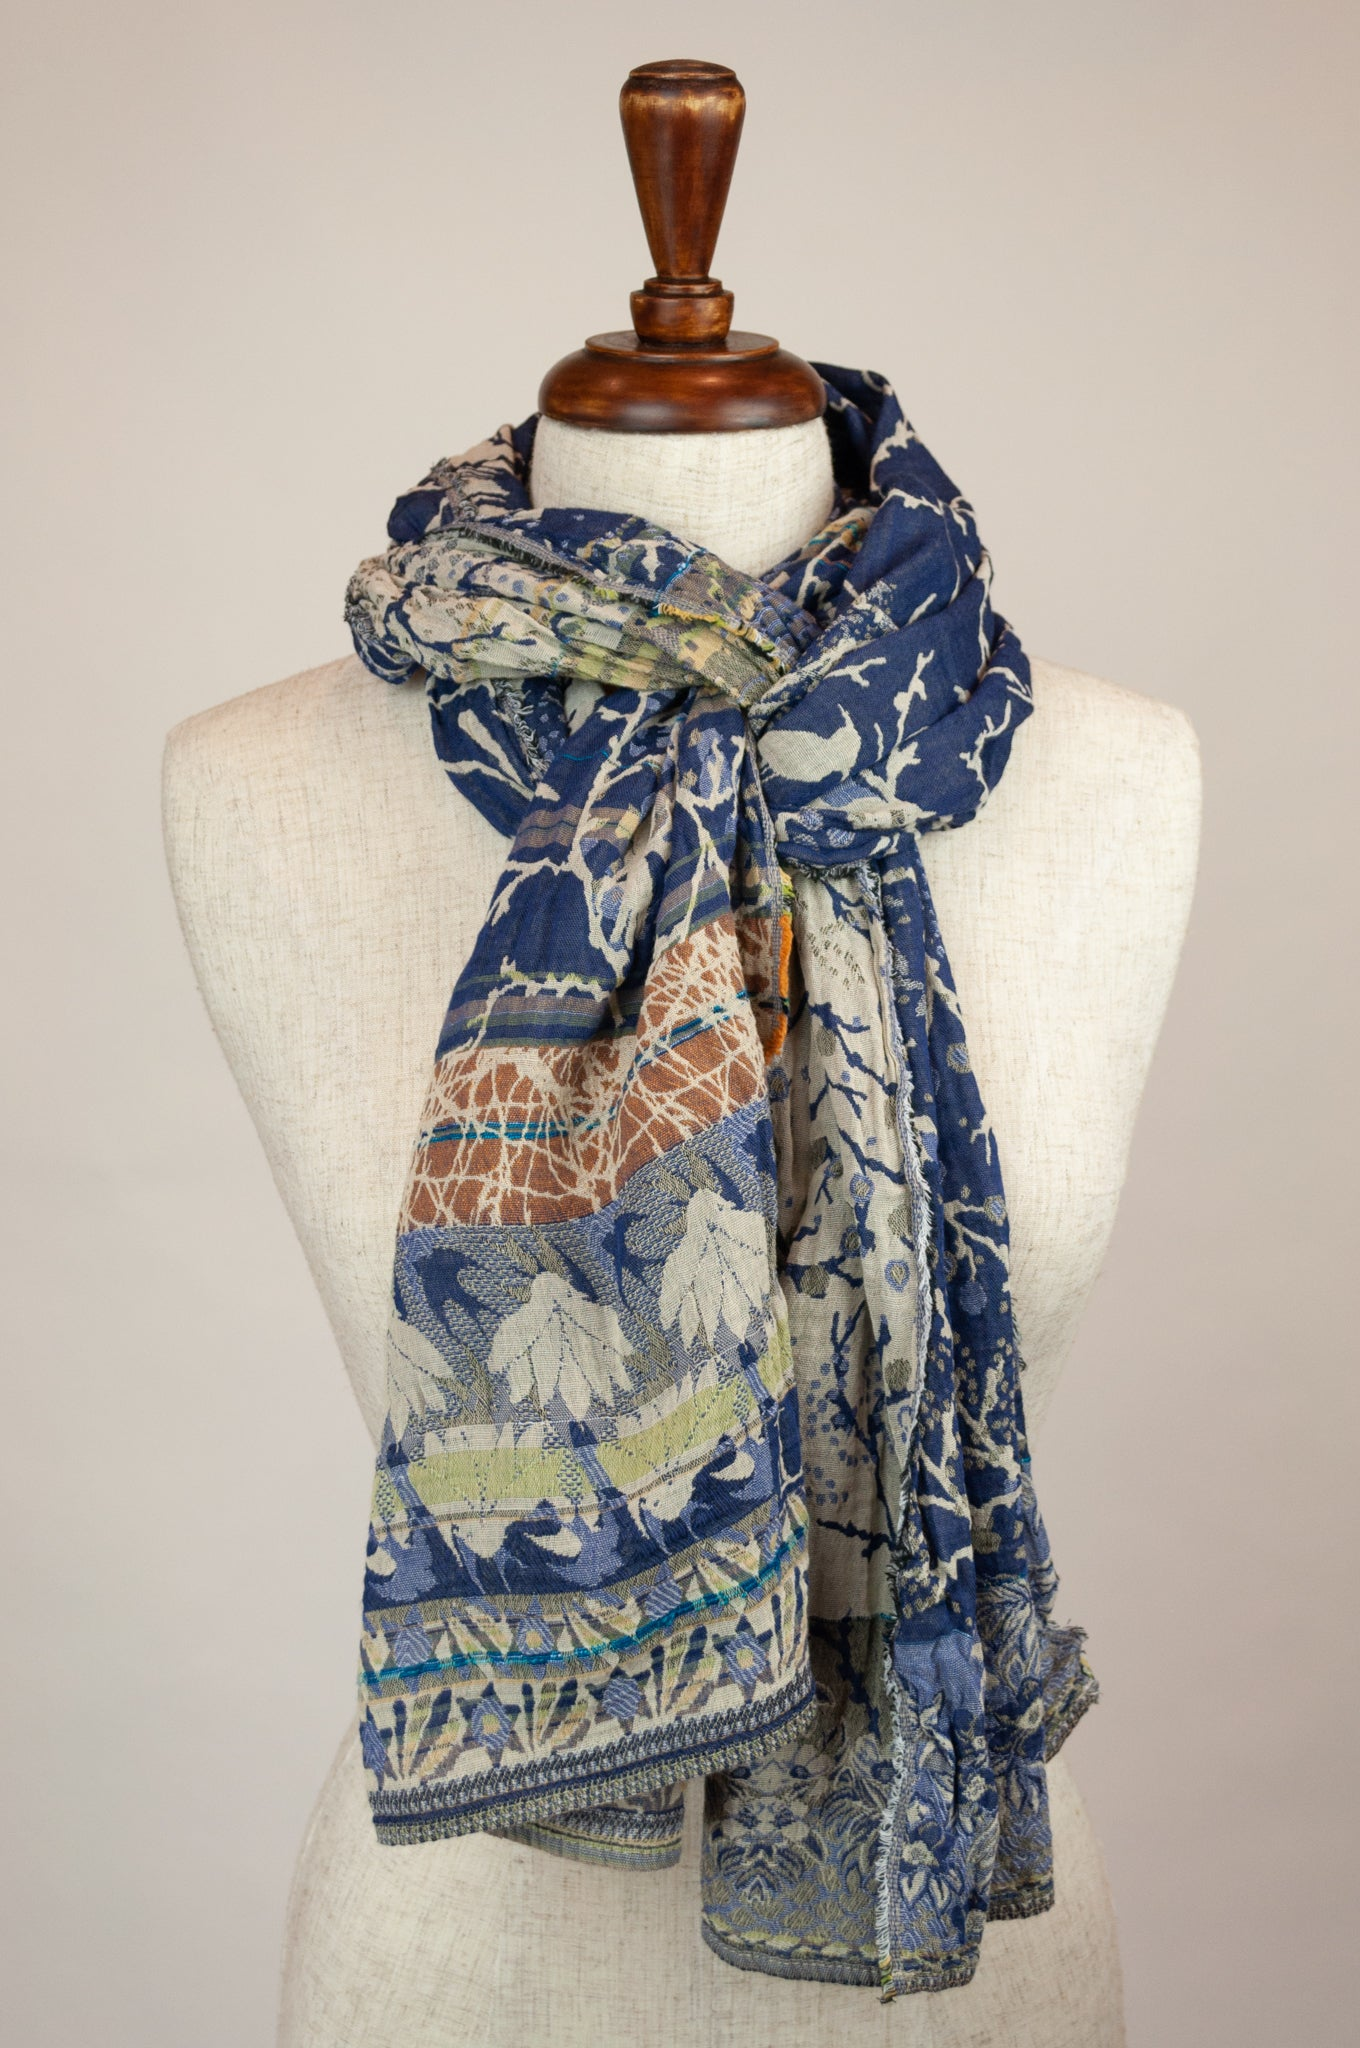 Létol French organic cotton scarf with tree print, featuring birds and a floral border in oatmeal and blue with gold highlights.